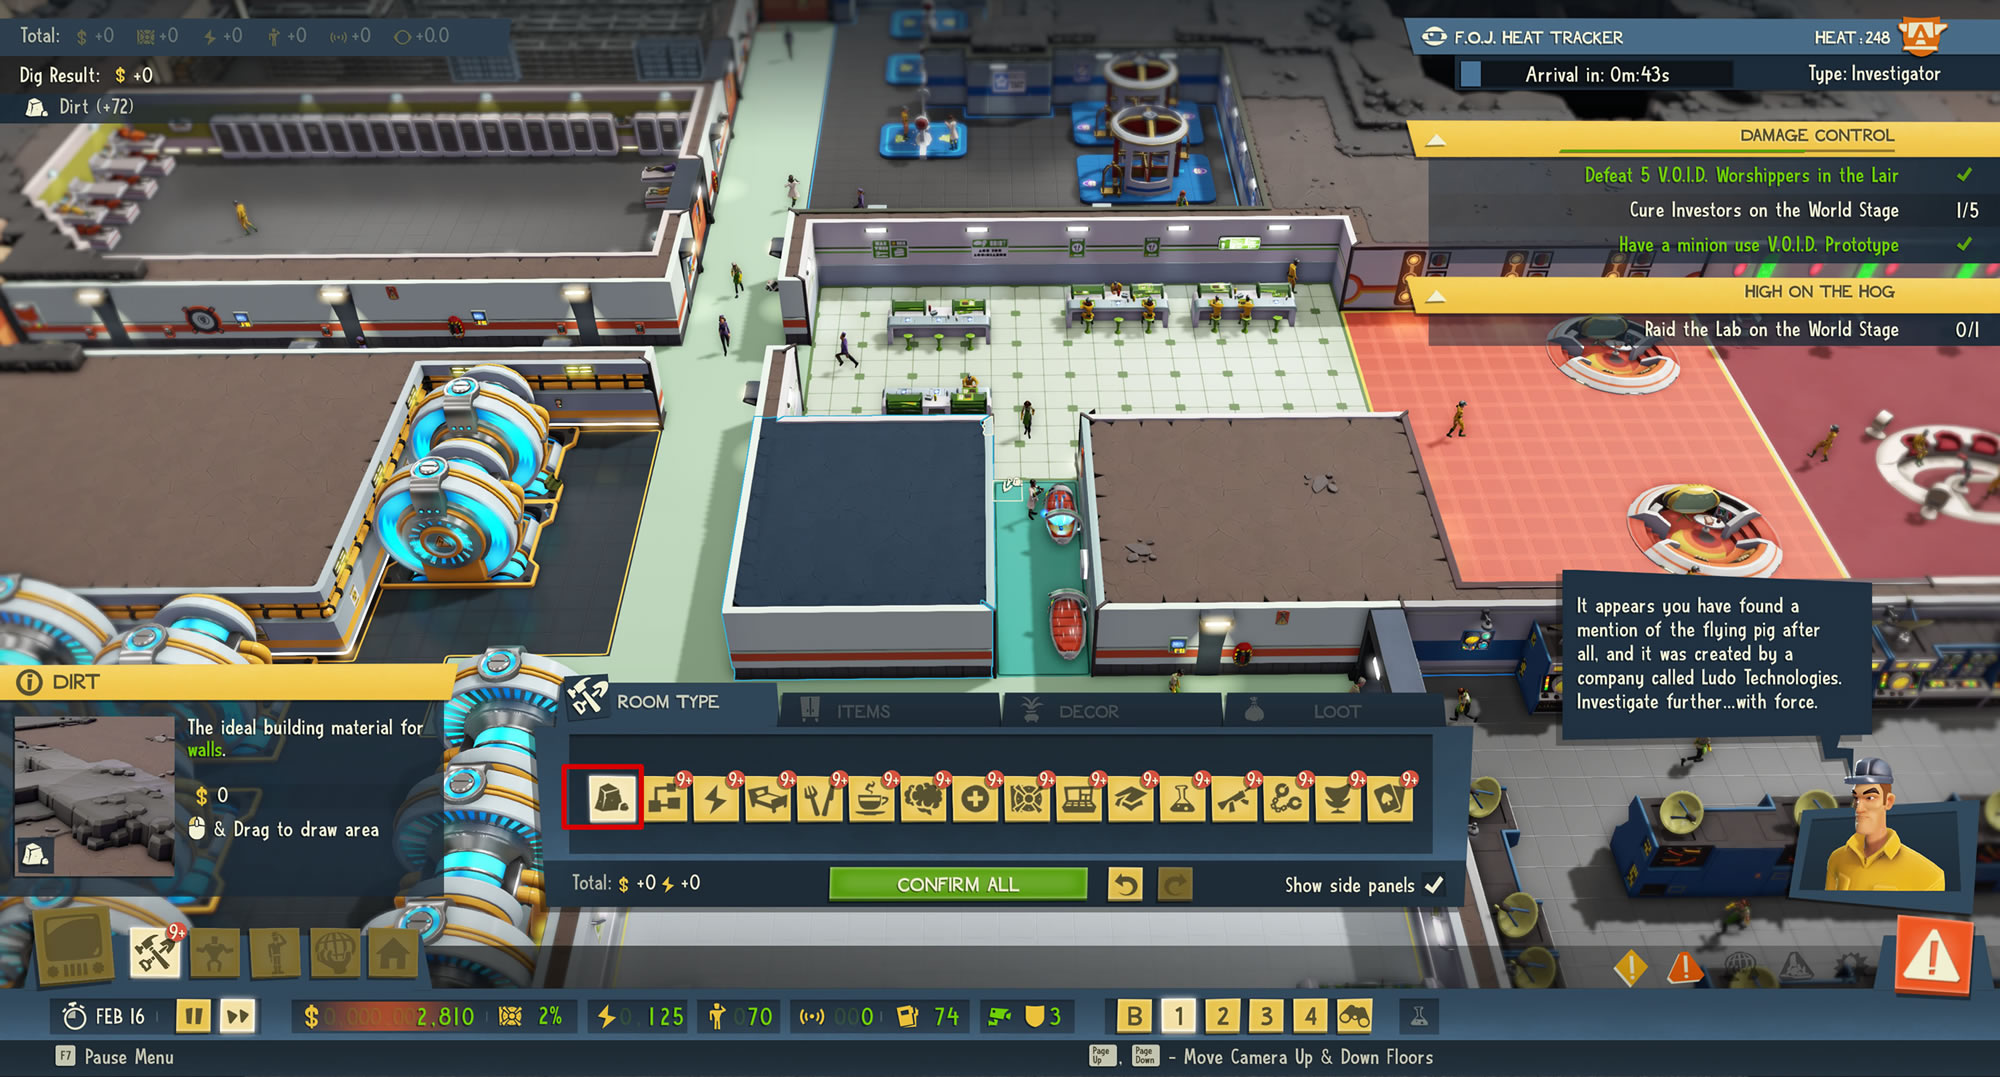 How to Destroy a Room in Evil Genius 2